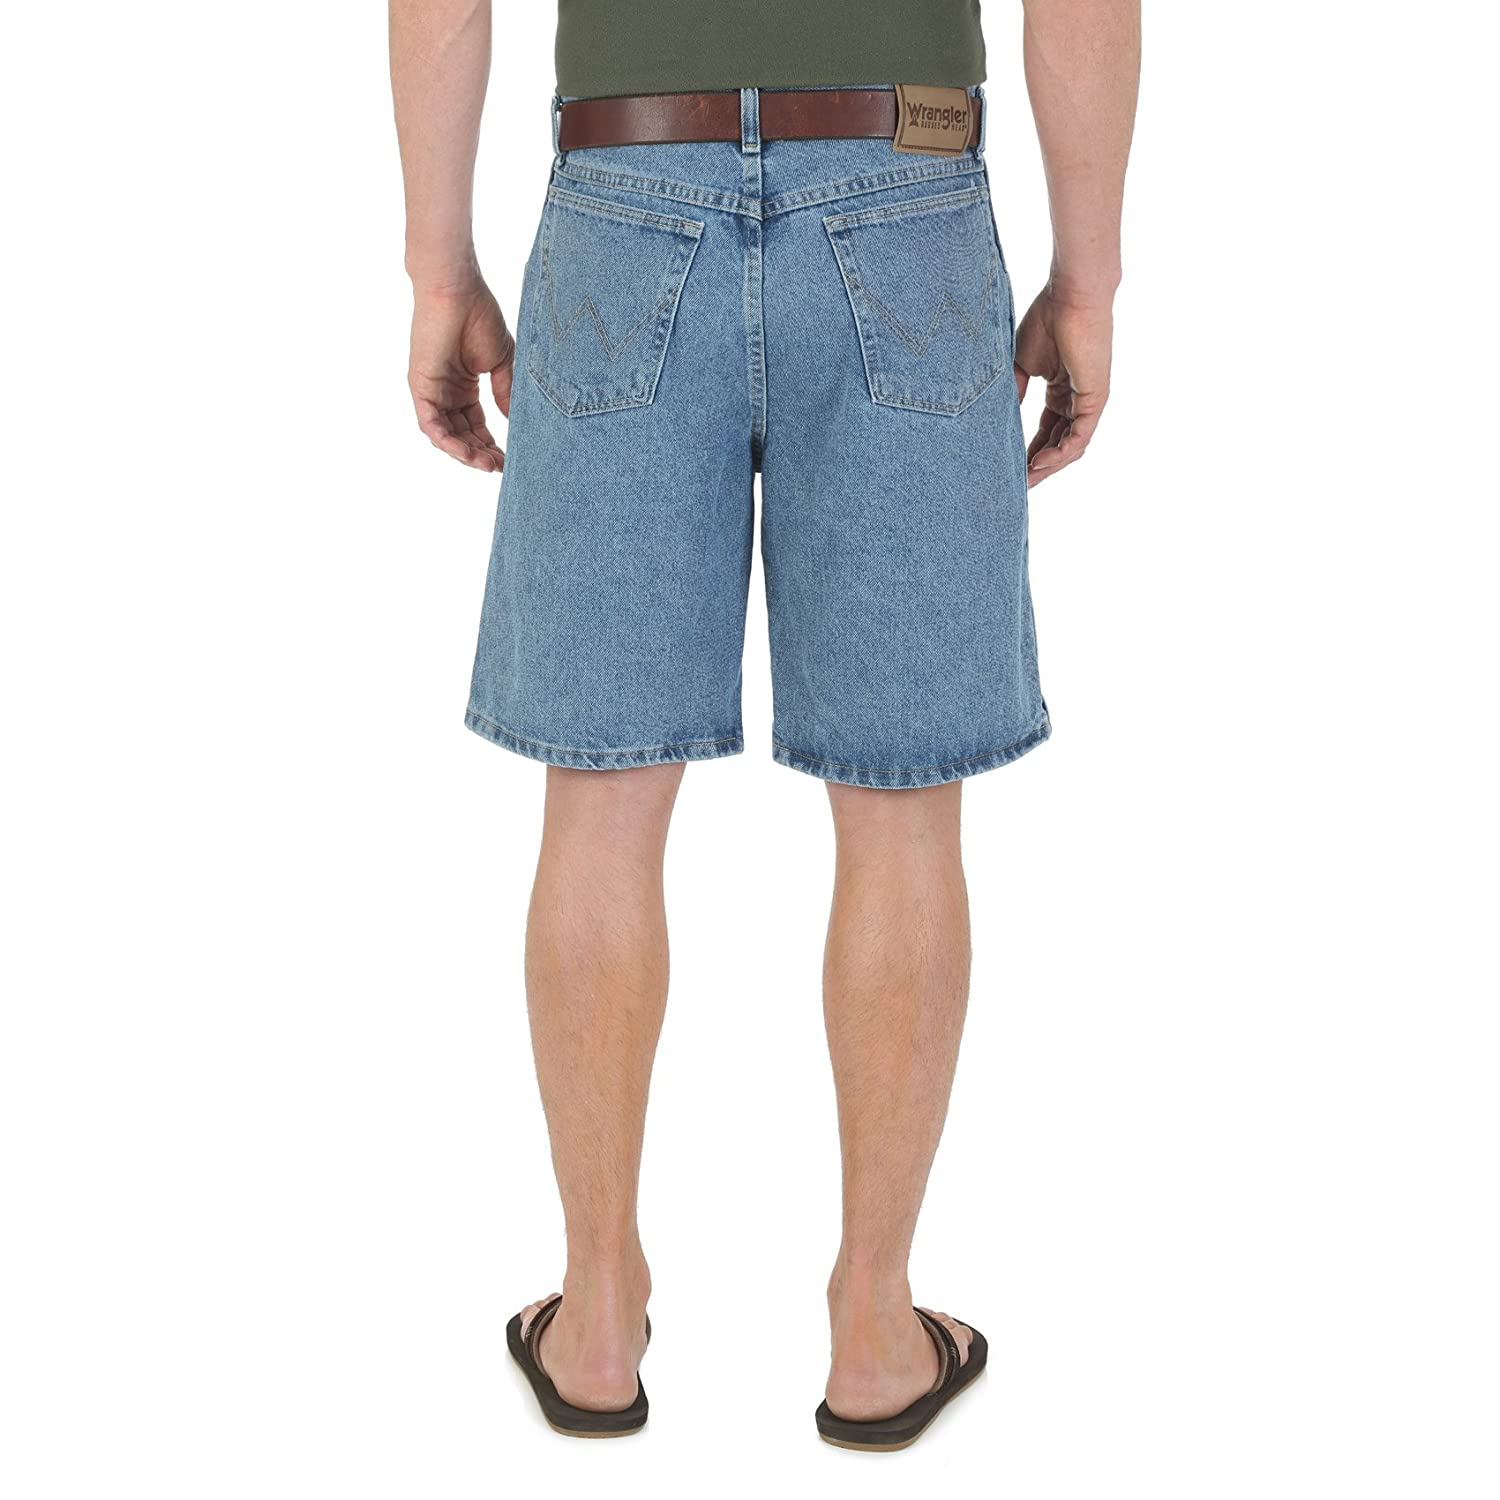 9b541bd7 Amazon.com: Wrangler Men's Rugged Wear Big & Tall Relaxed-Fit Short:  Clothing